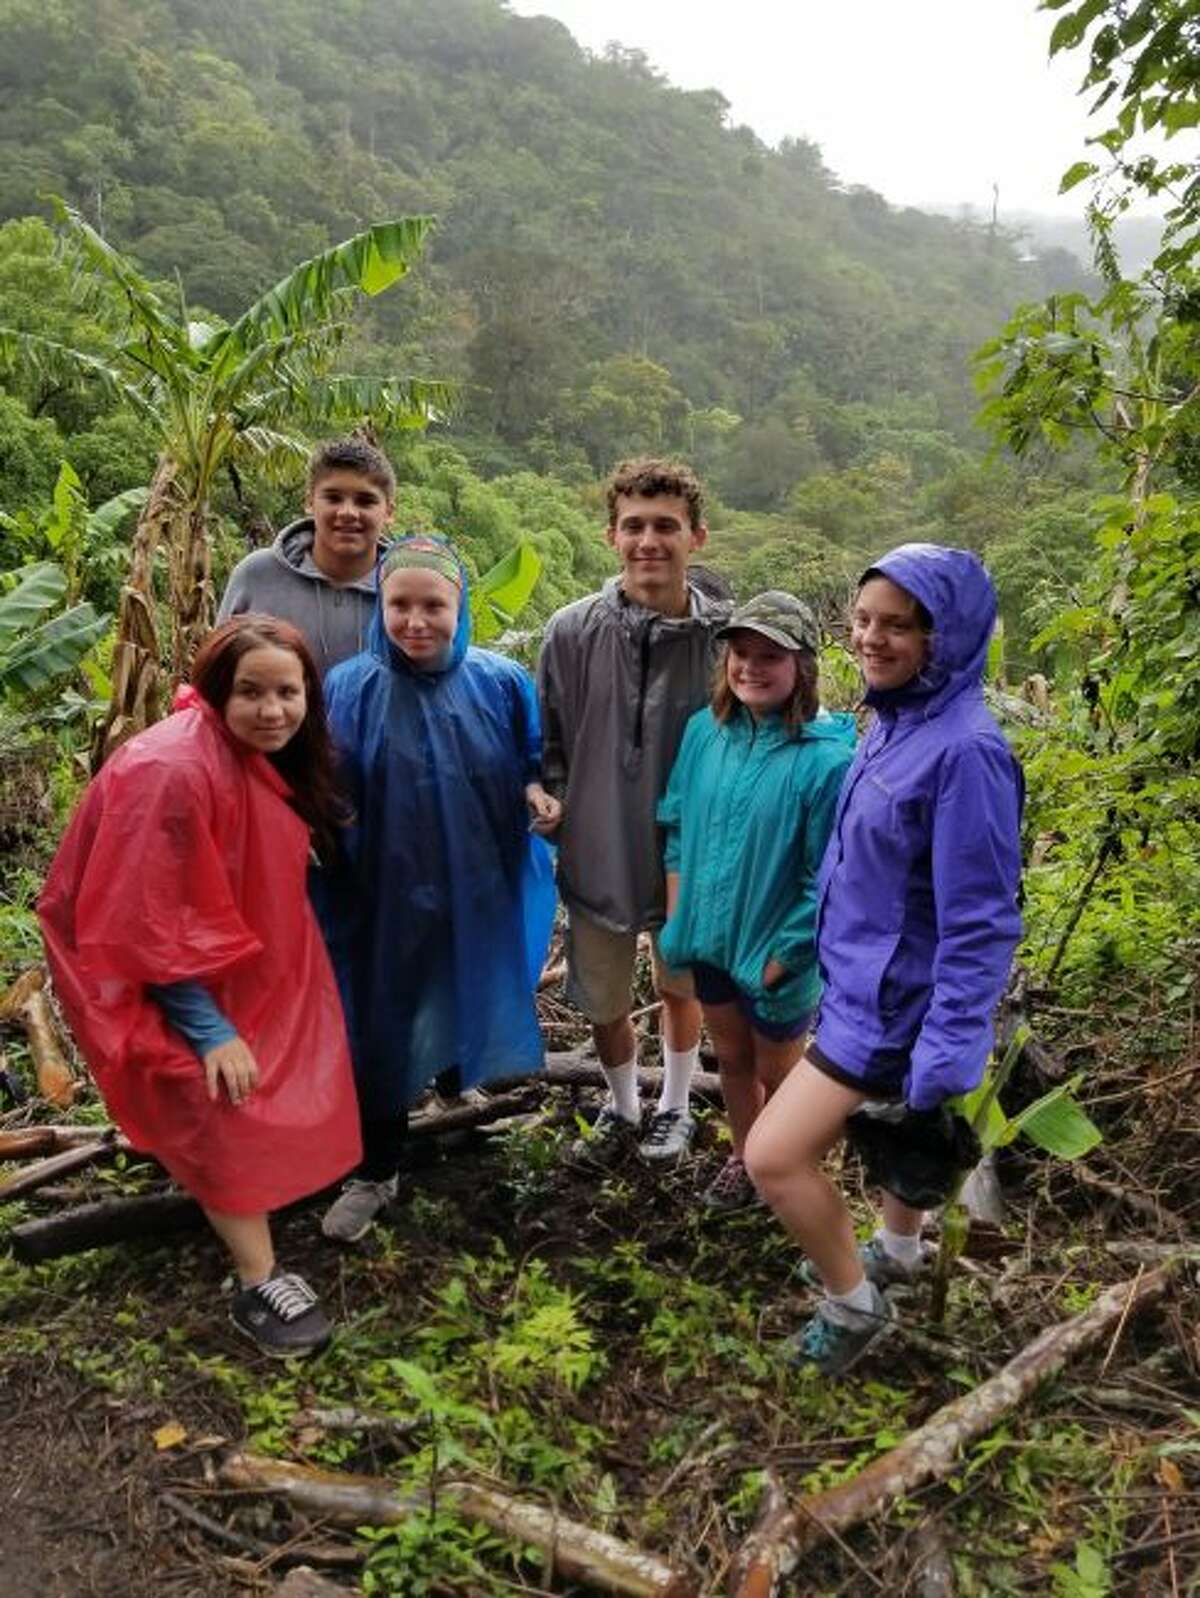 Visiting the Rain Forest in Costa Rica was a great educational opportunity for the students and they had the chance to plant a tree at that location.